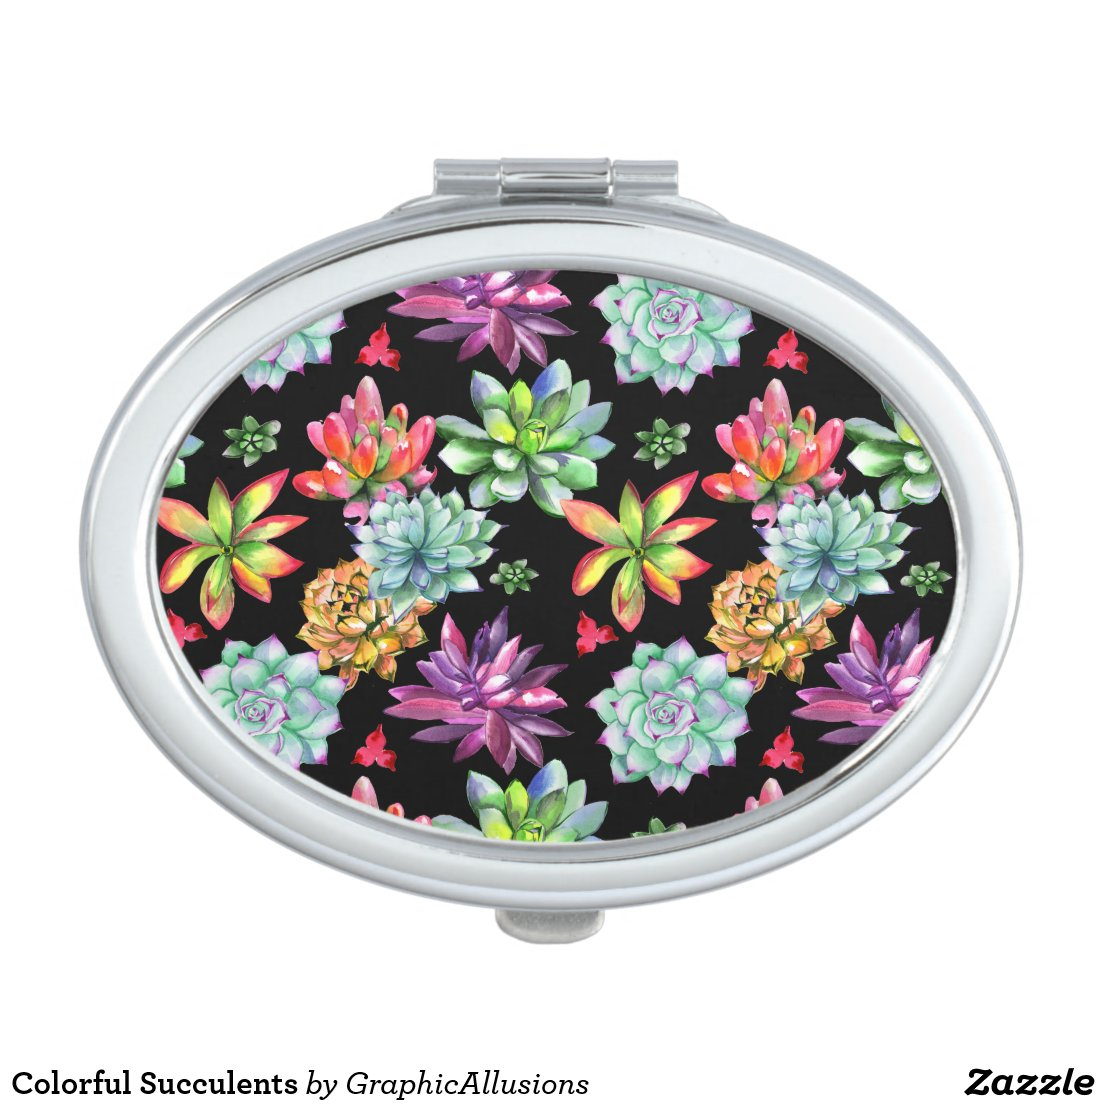 Colorful Succulents Compact Mirror